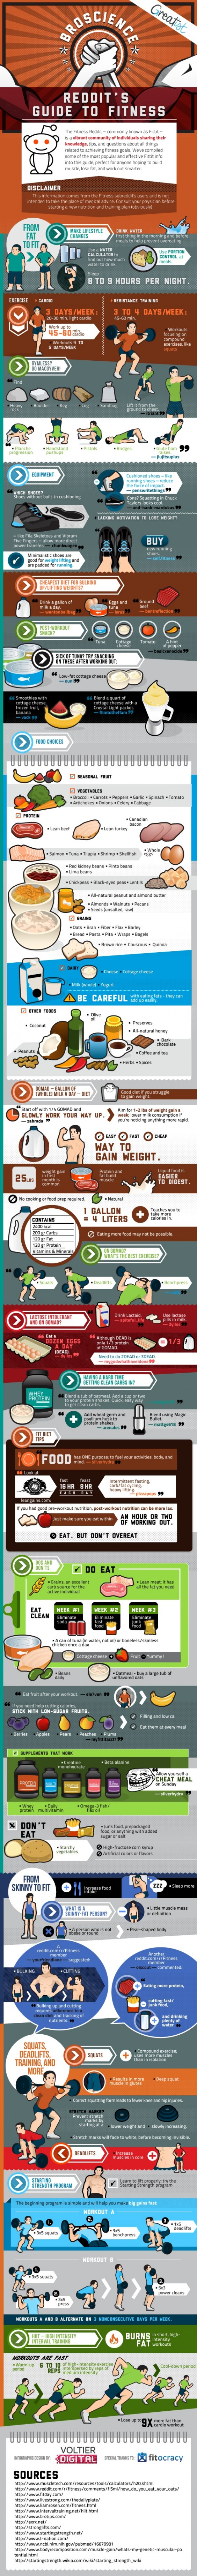 Reddit S Guide To Fitness Infographic